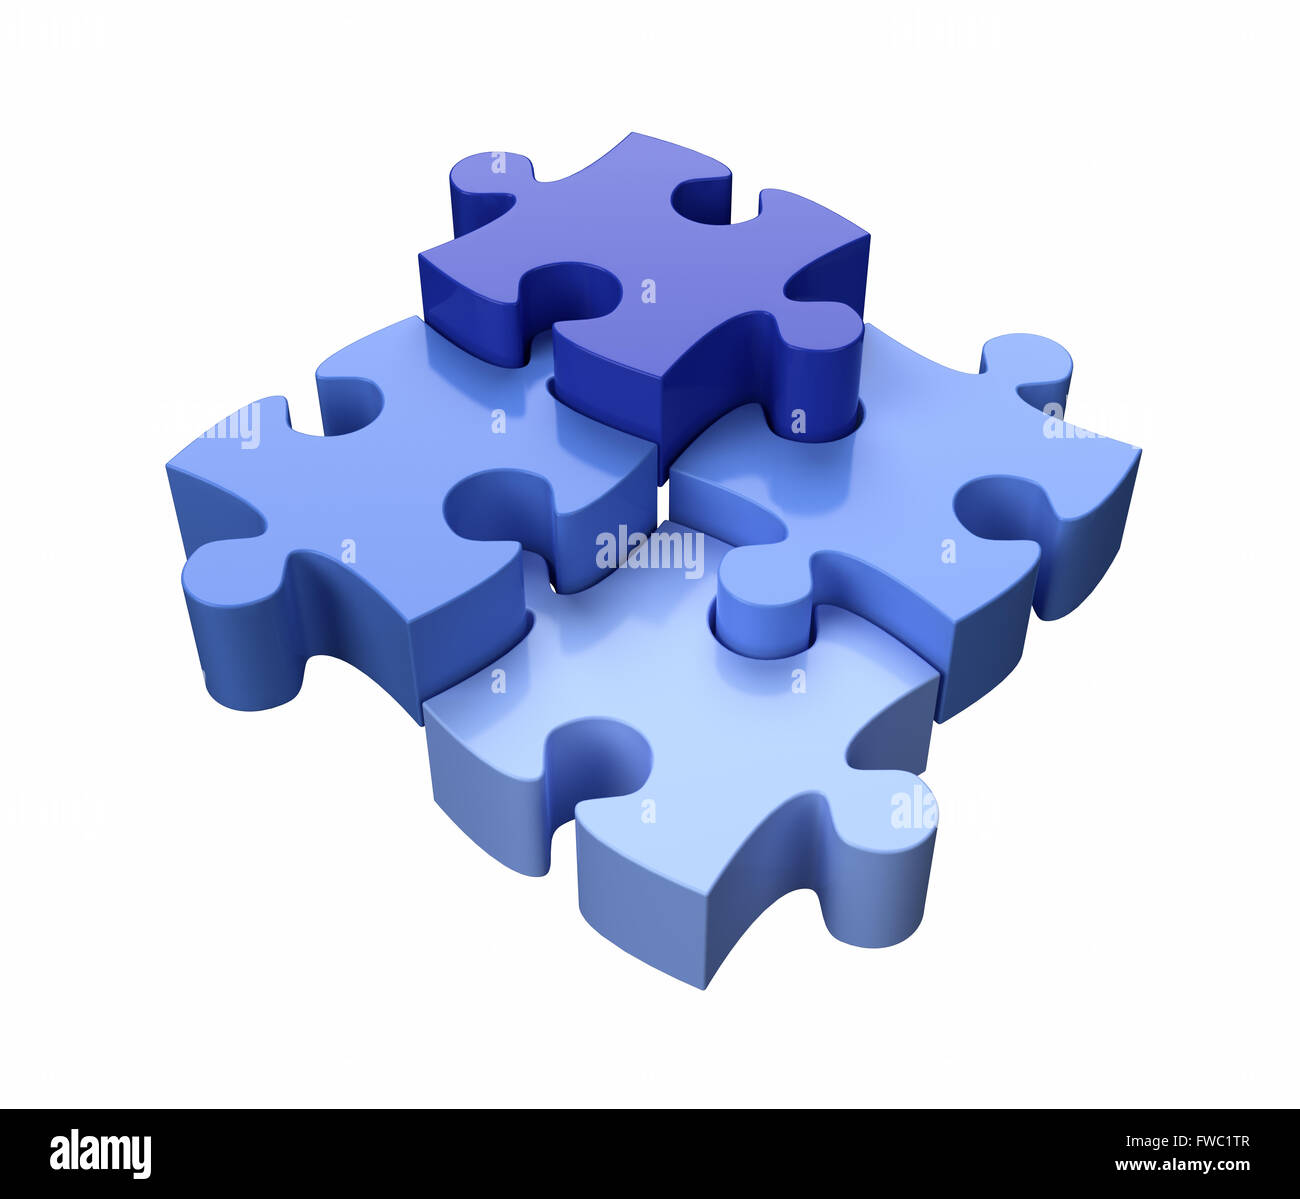 Four Jigsaw Puzzle Pieces Blue on White Background - Stock Image